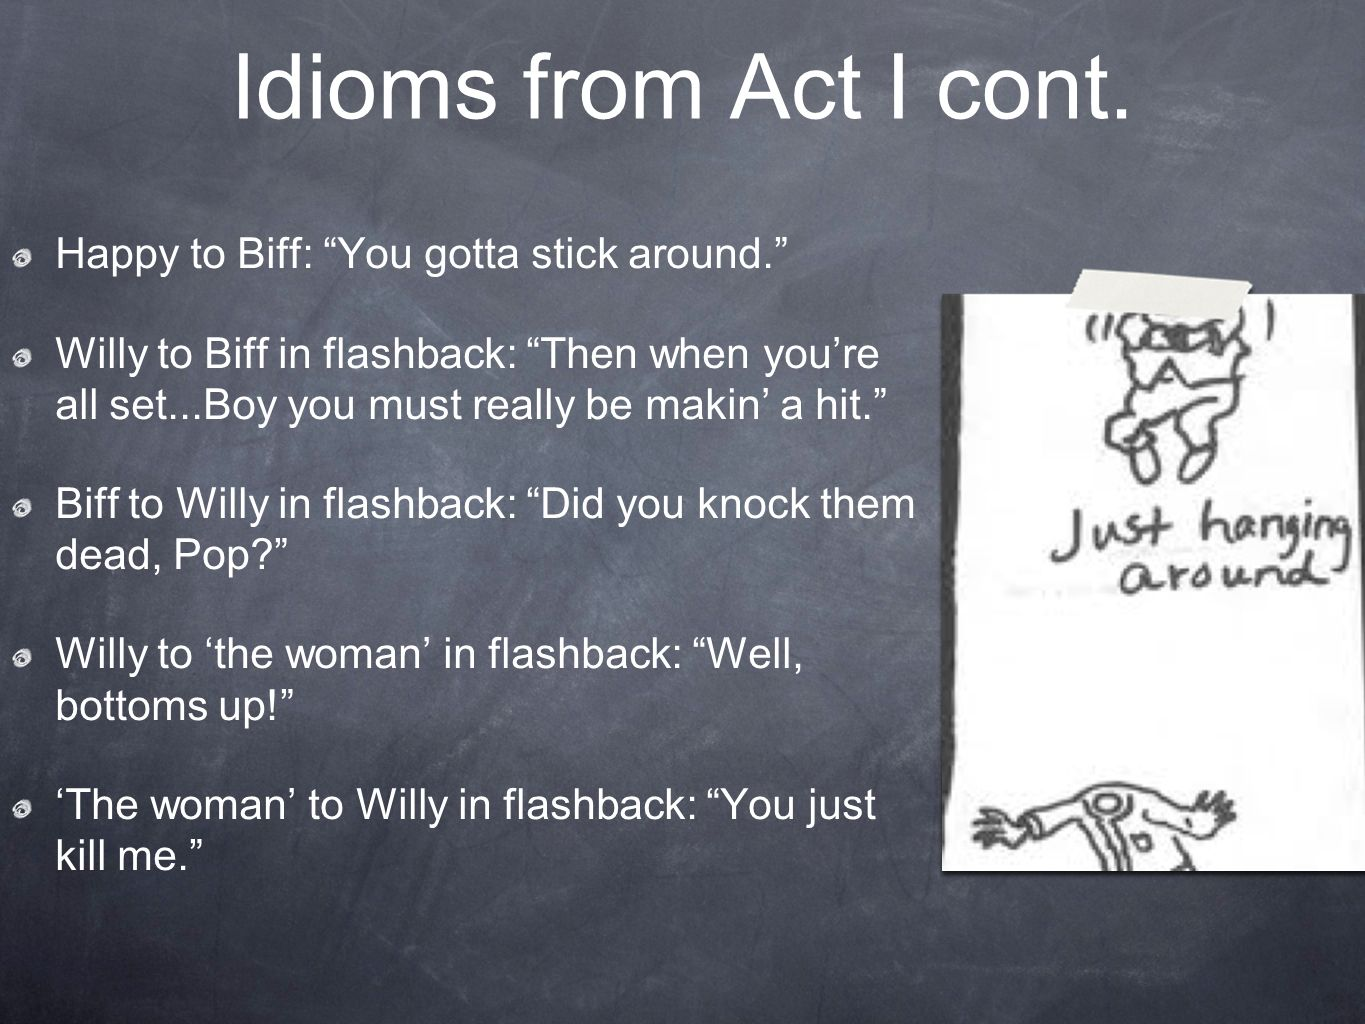 Idioms from Act I cont. Happy to Biff: You gotta stick around.